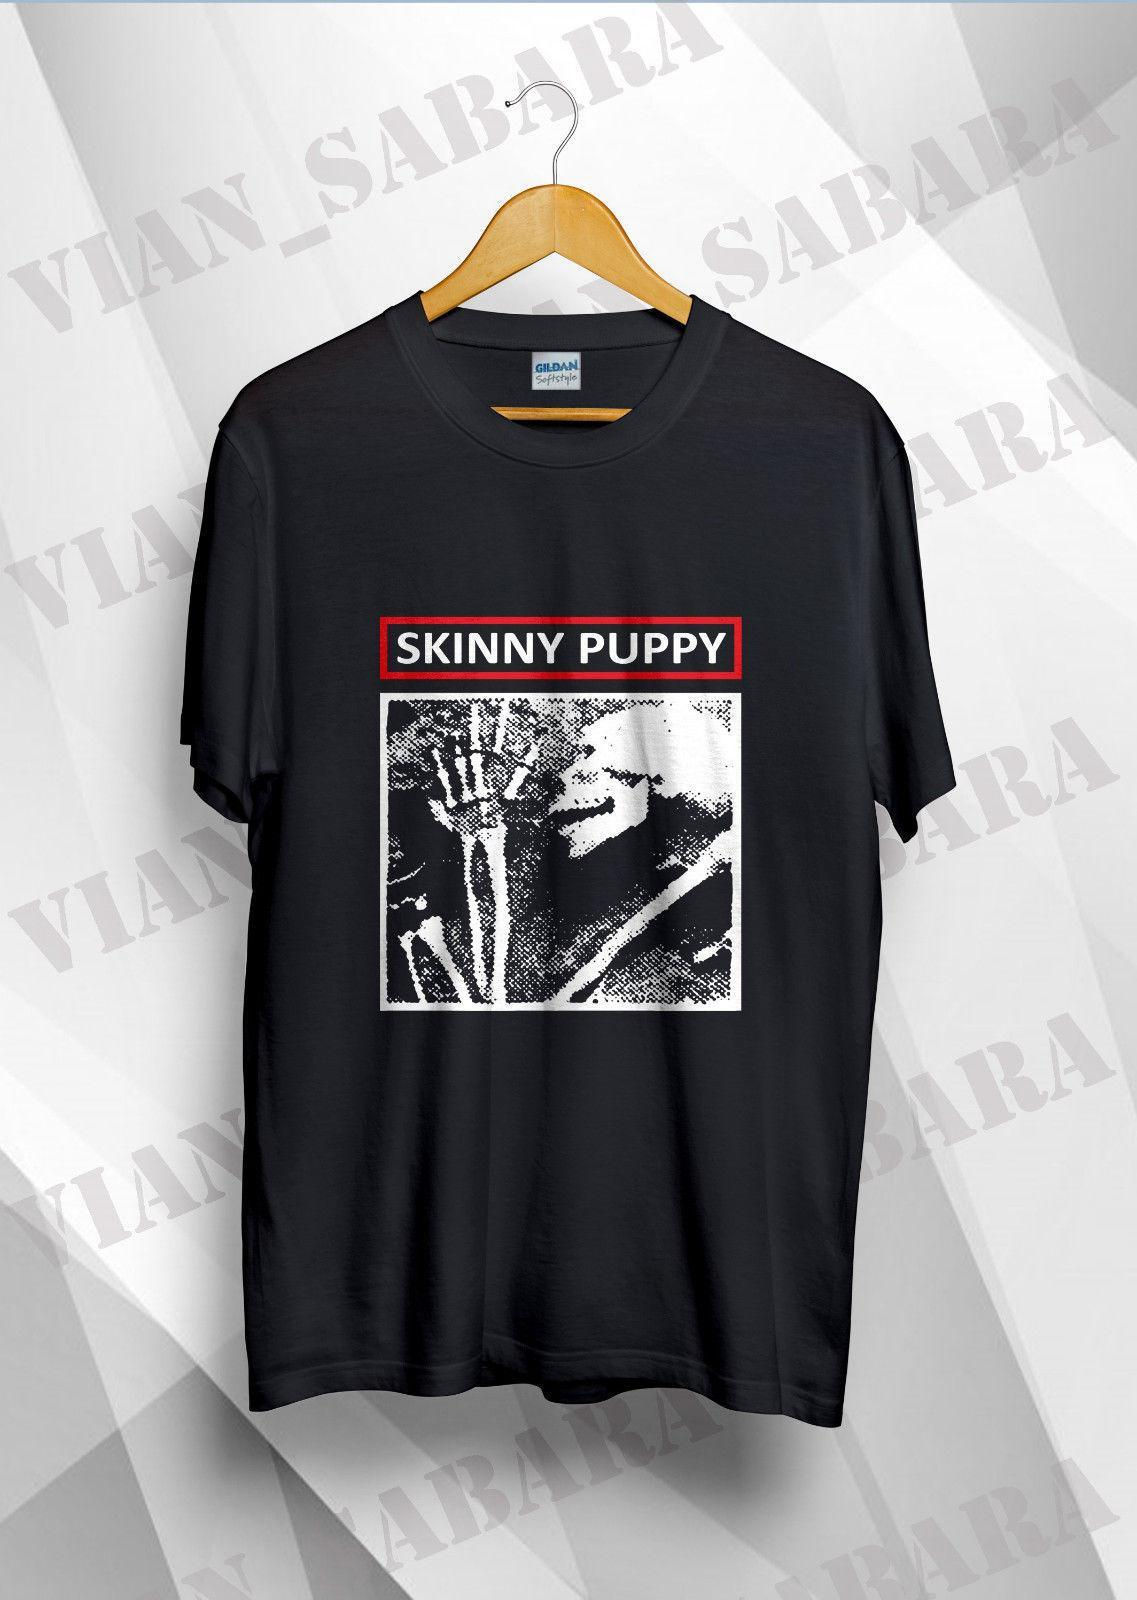 fab5d7da56cf Skinny Puppy Ministry Depeche Goth Siouxsie Vintage T Shirt Reprint Size S  2XL Funny T Shirts For Men Make T Shirts From Amesion99, $12.08| DHgate.Com